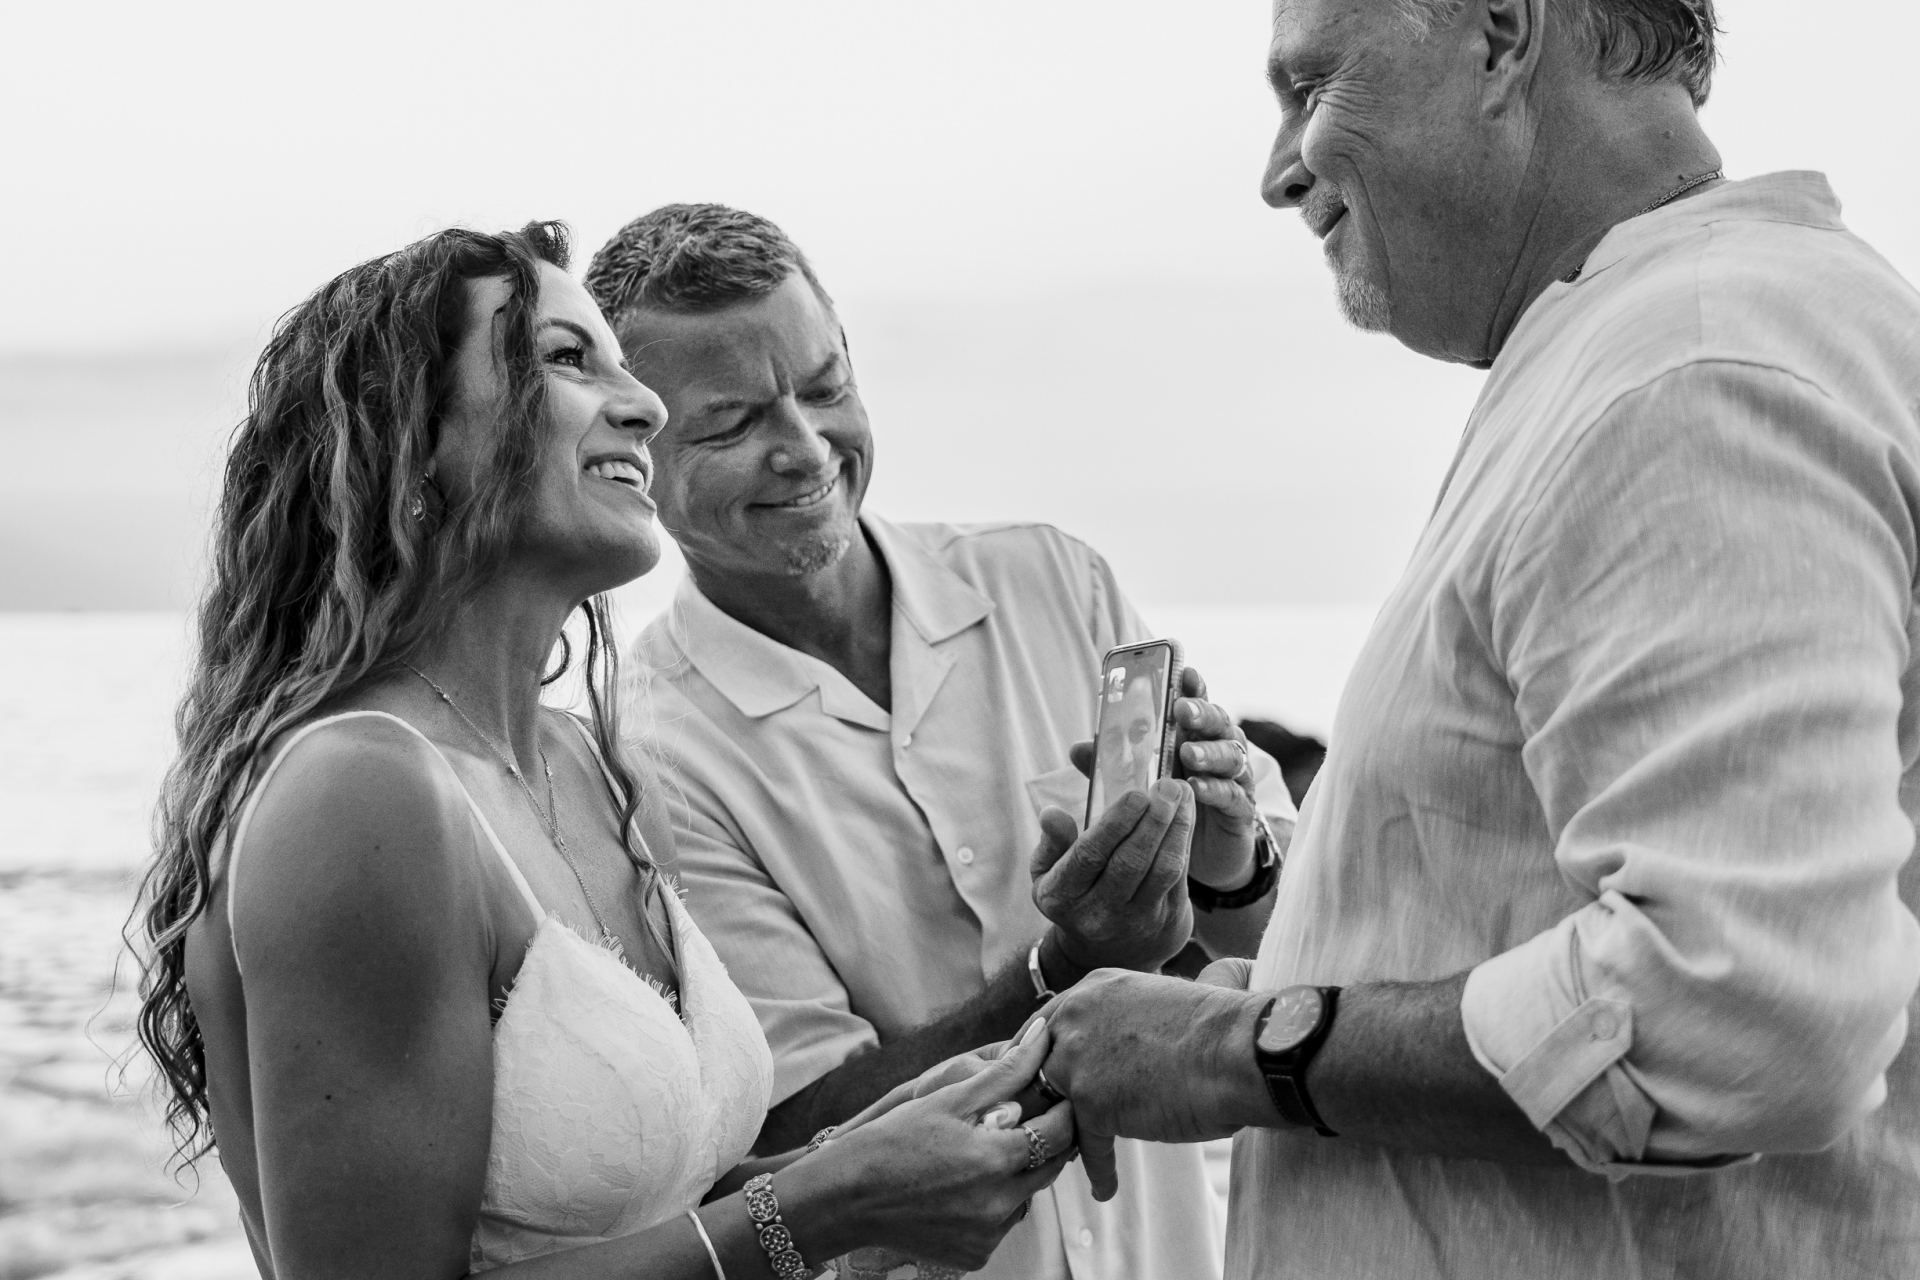 Puerto Vallarta Beach Elopement Vows Photography | the ceremony was led by their officiant through a long-distance video conference on a phone